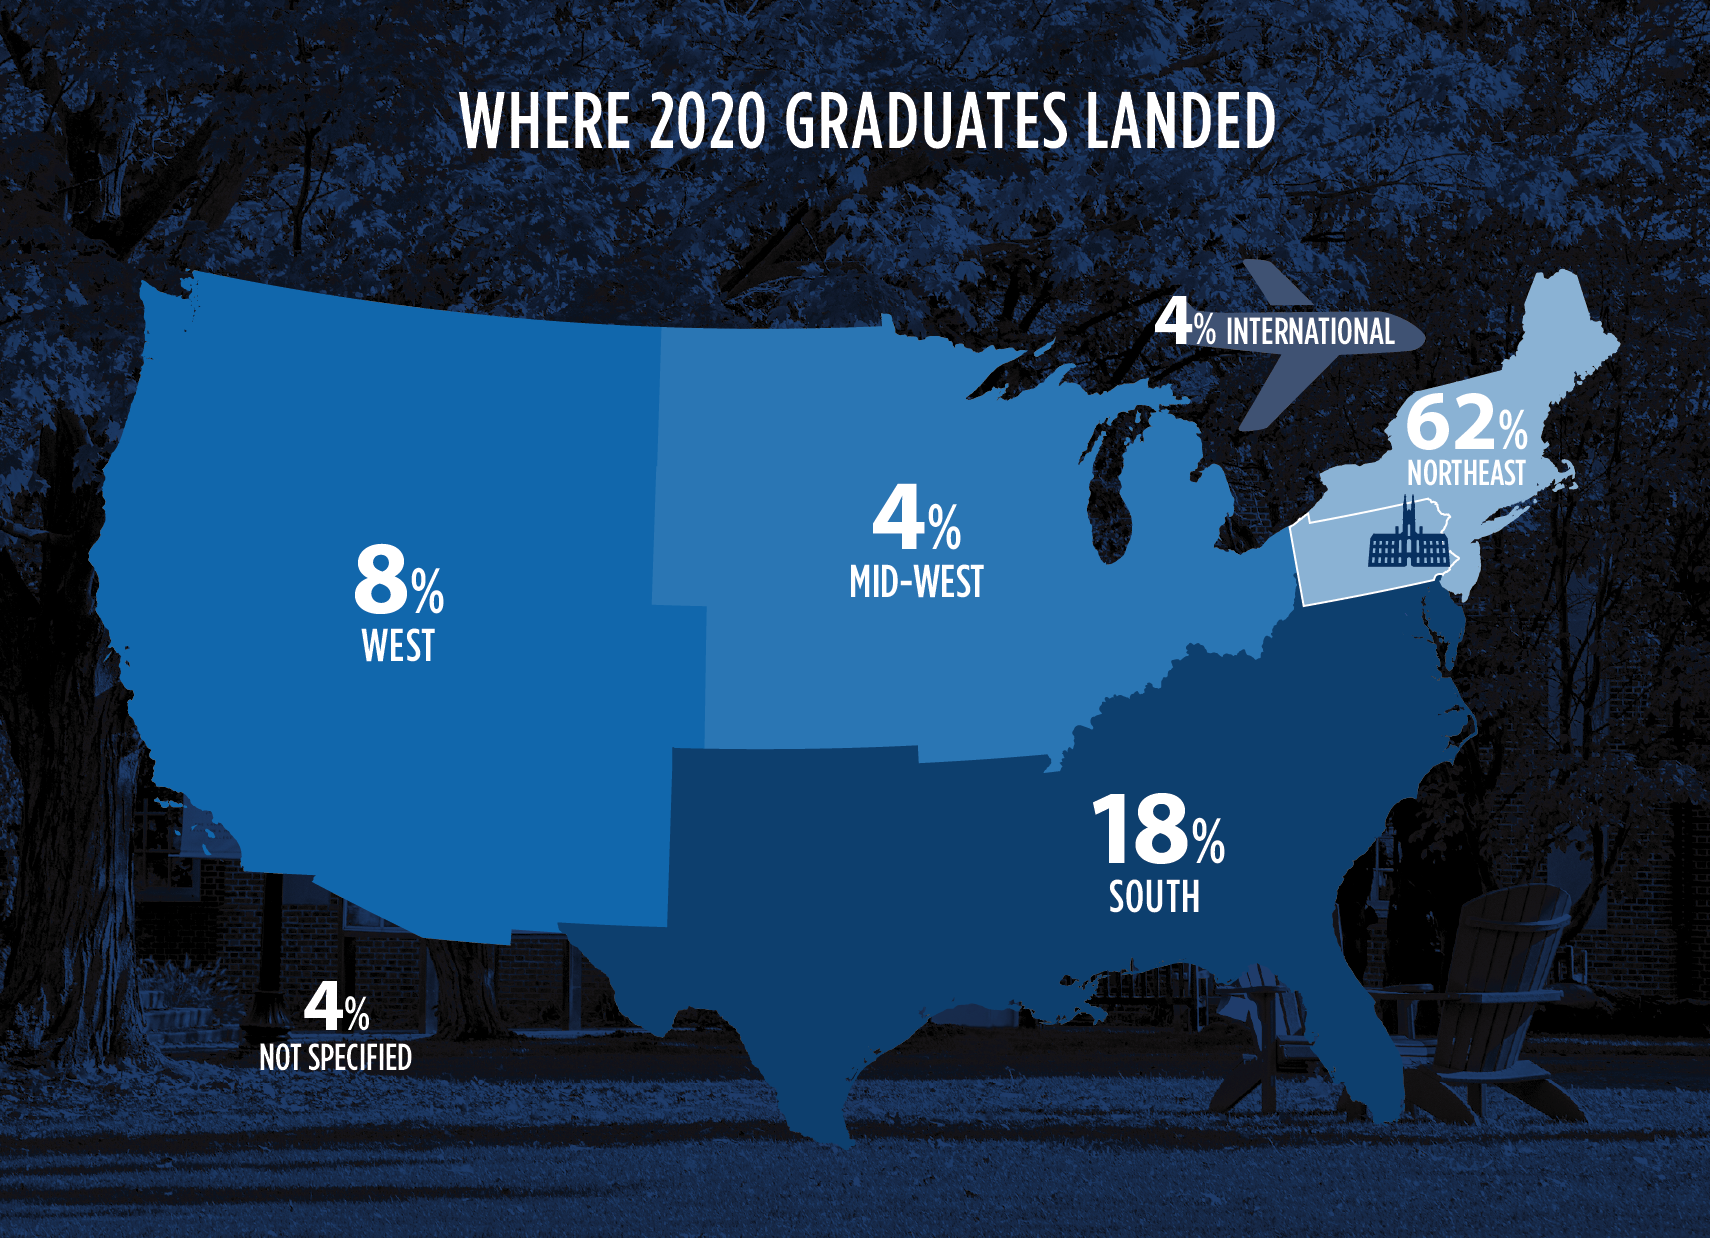 Map showing where members of F&M's class of 2020 have landed: 62% in northeast US, 8% in western US, 4% in the midwest, 18% in southeast US, and 4% international.